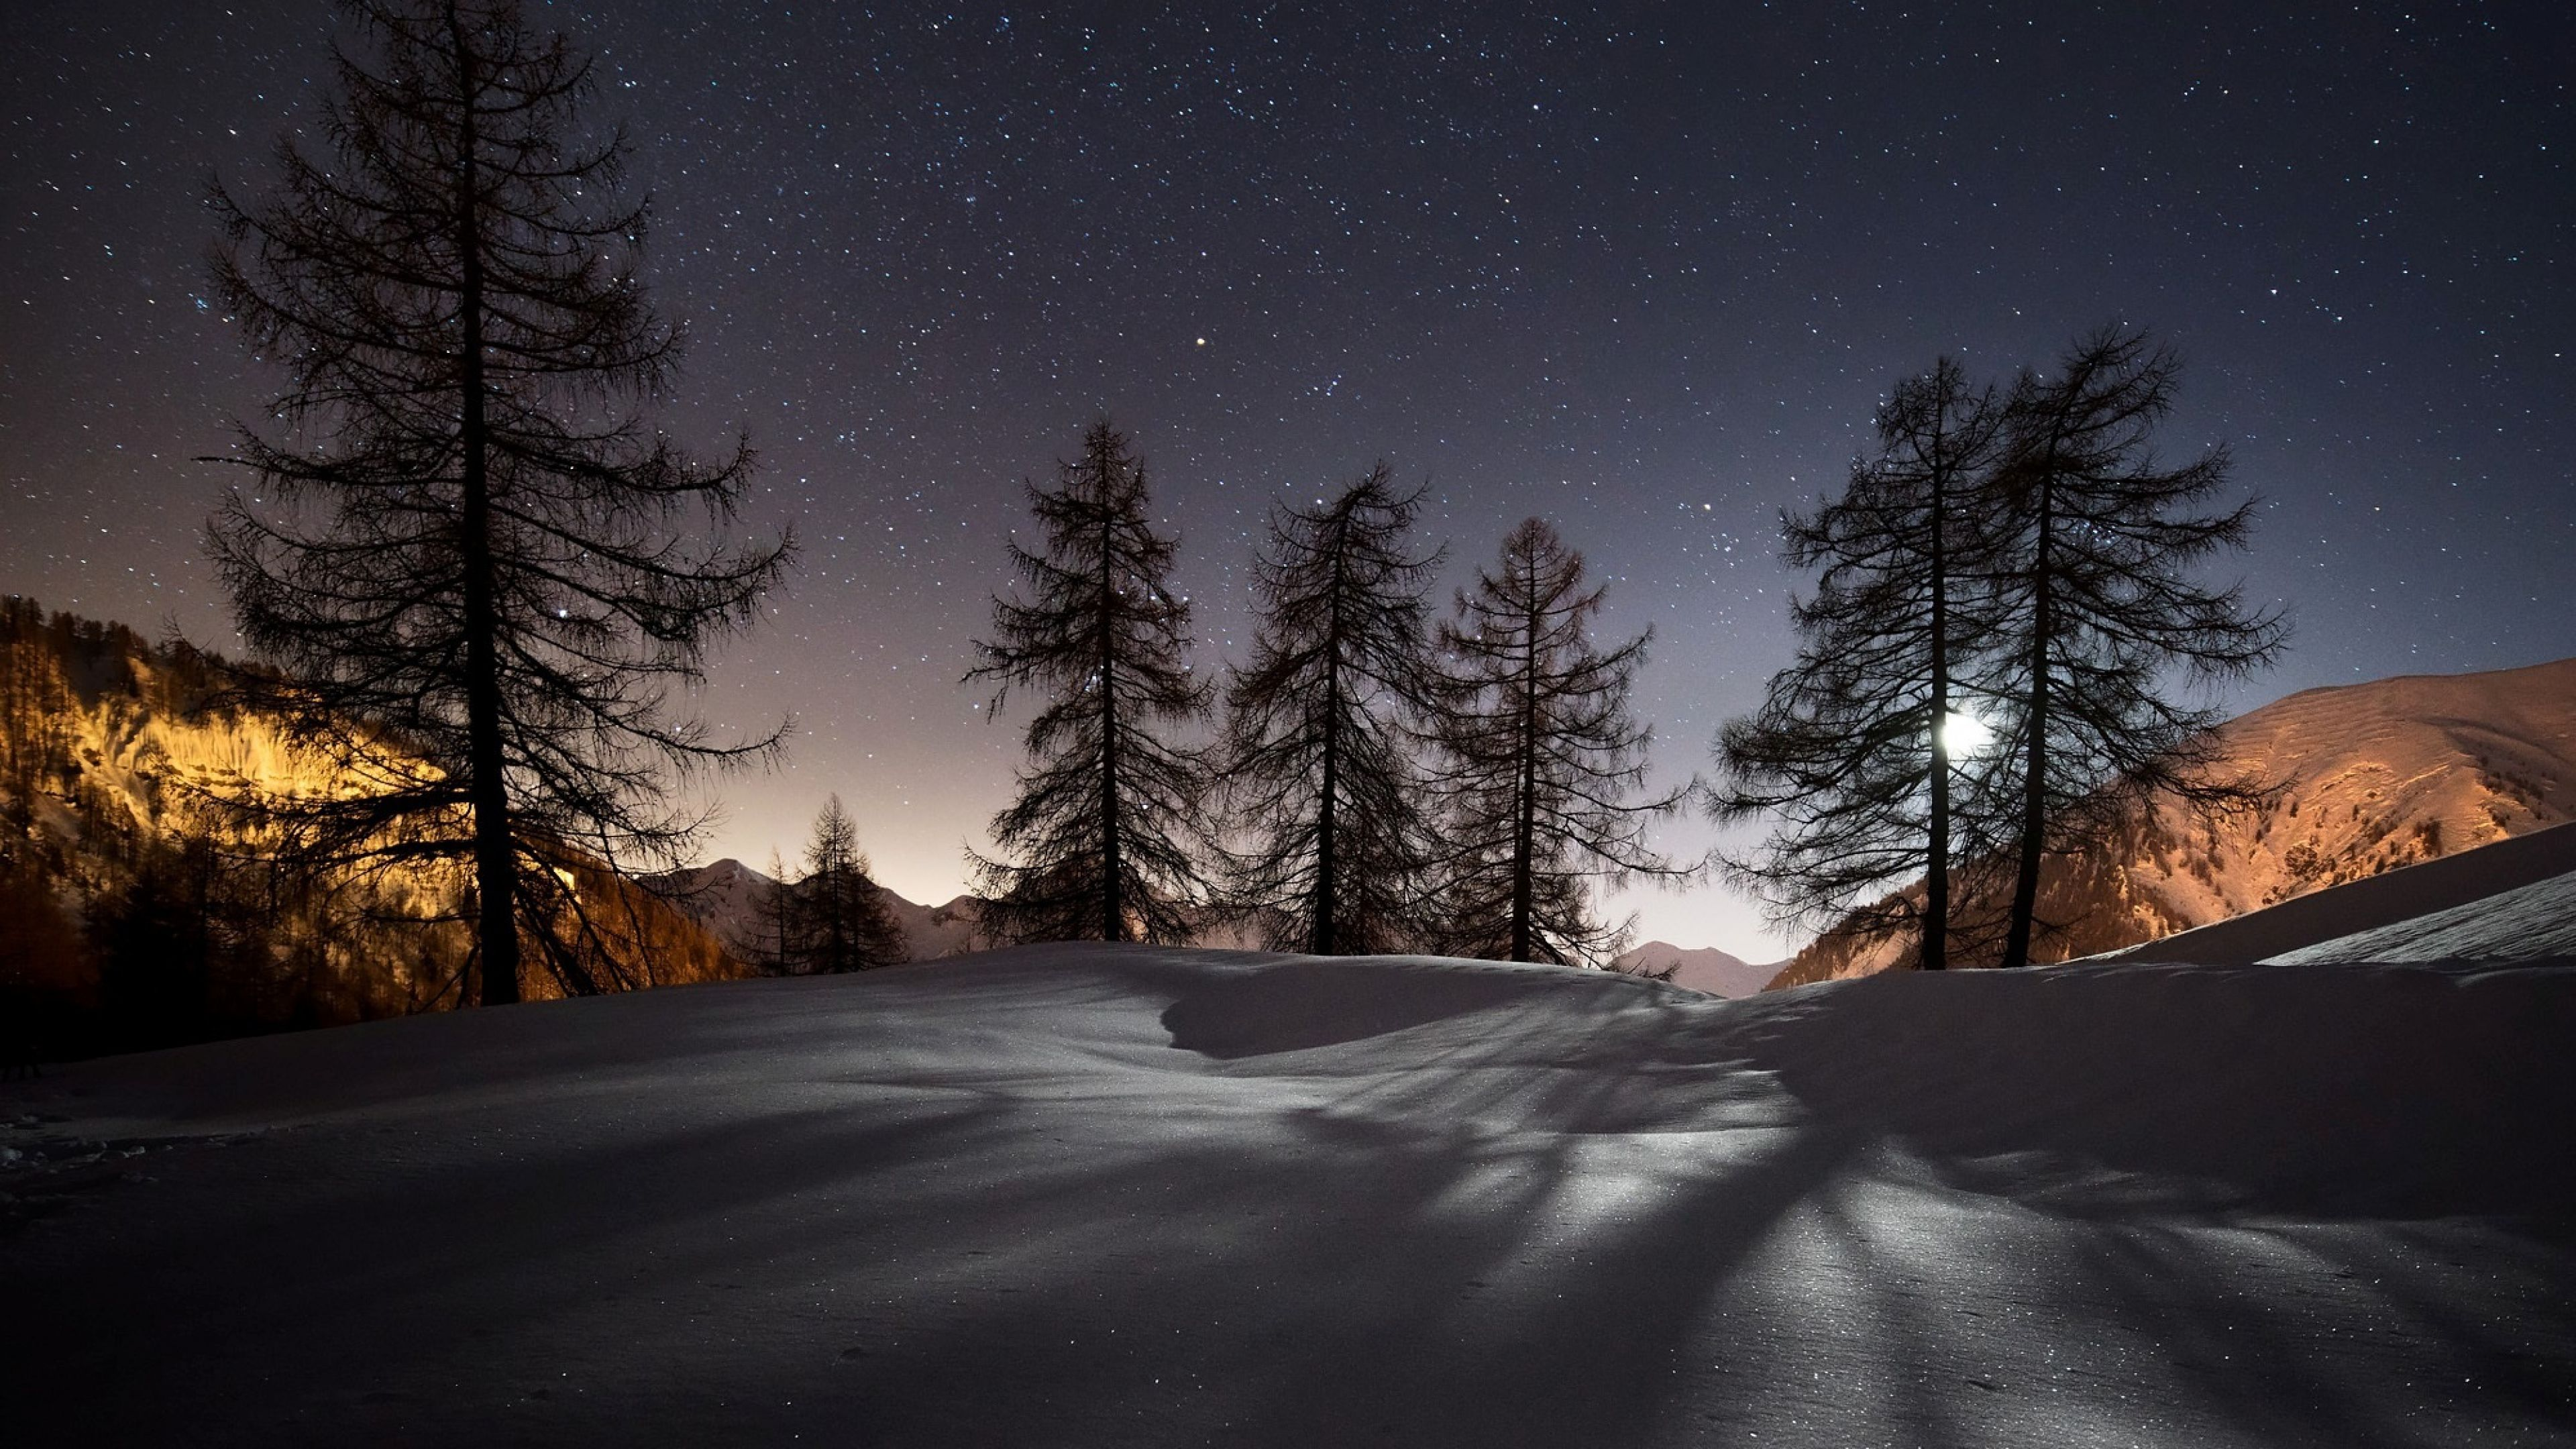 Winter Trees Snow 4k Wallpapers Night Landscape Landscape Wallpaper Winter Wallpaper